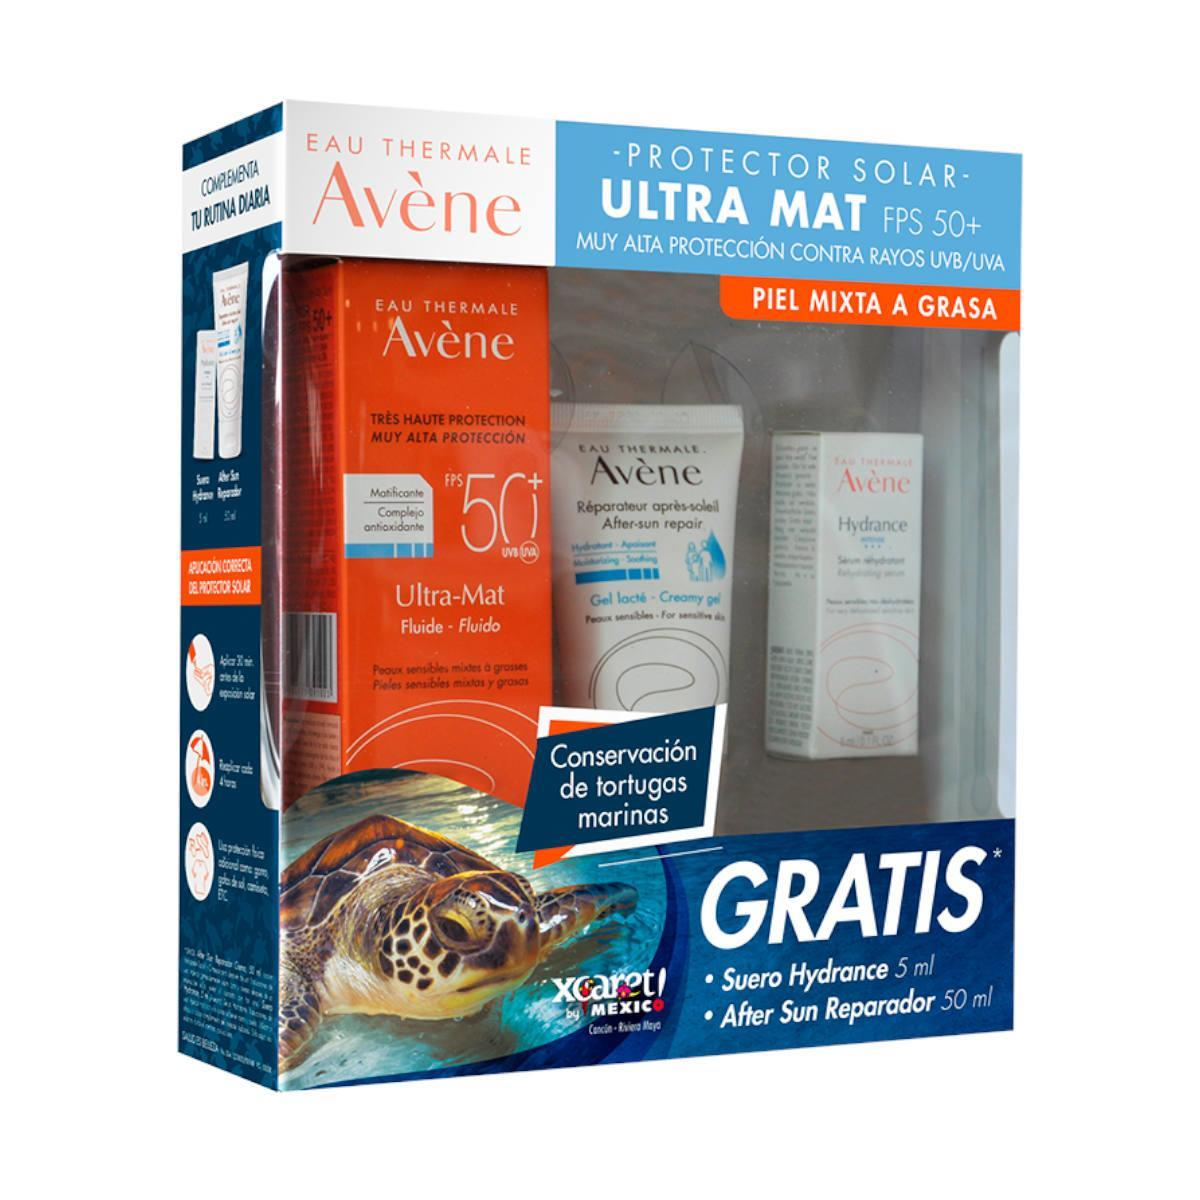 A-Kit Avene Ultra Mat 50Ml + Aftersun 50Ml + Suero Hydrance 5Ml